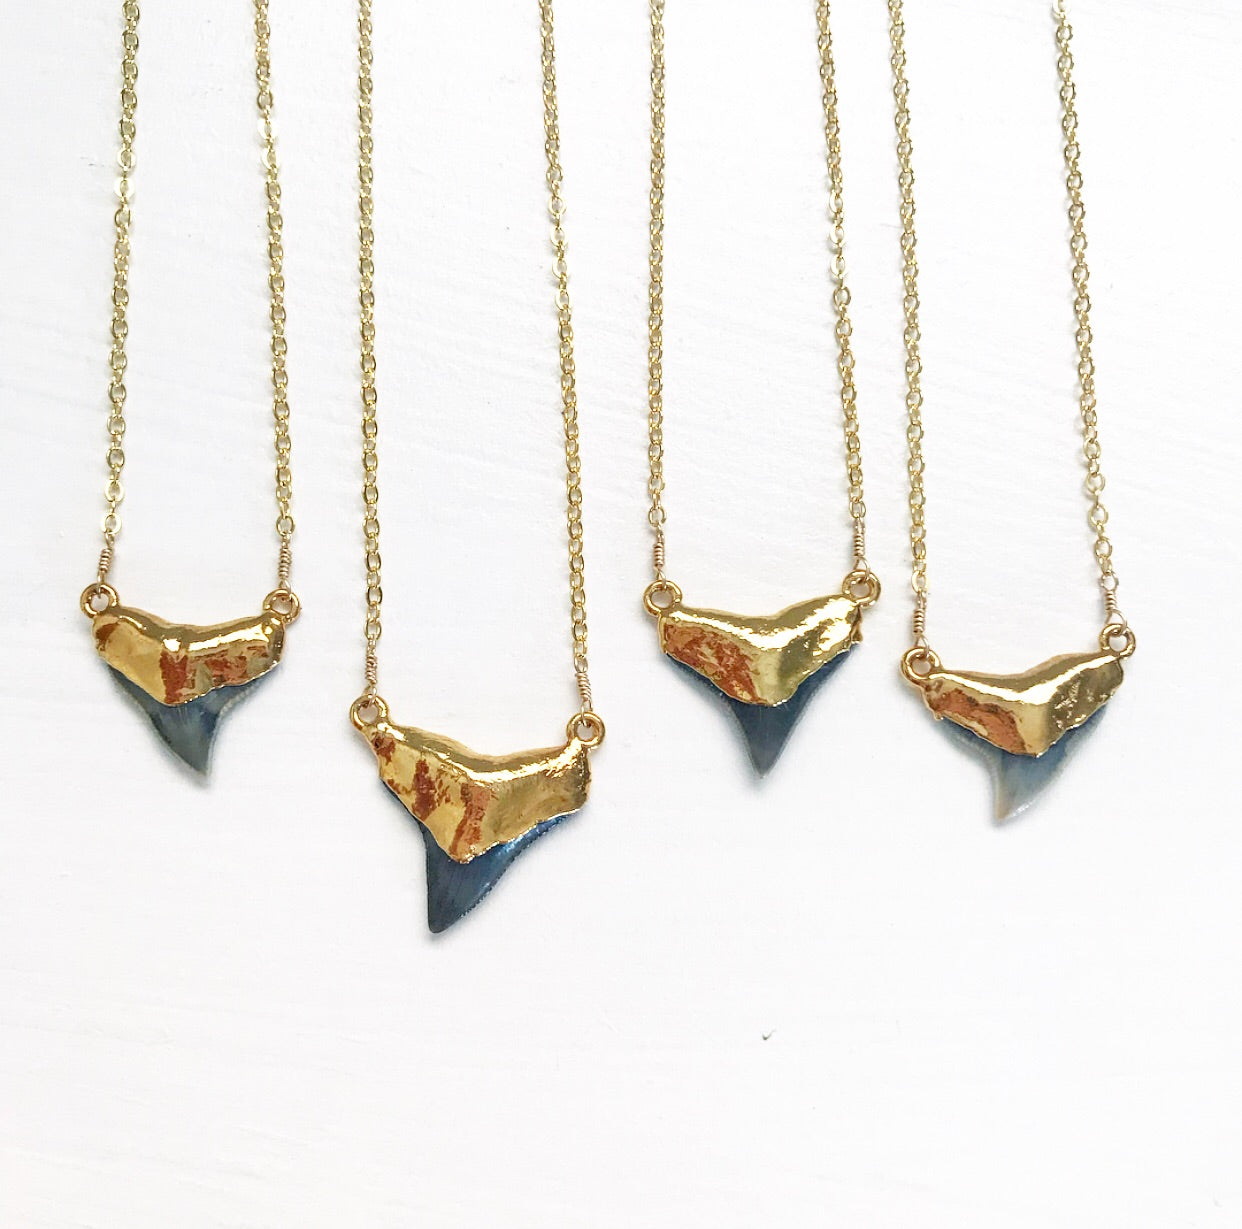 550-Shark Tooth Necklace